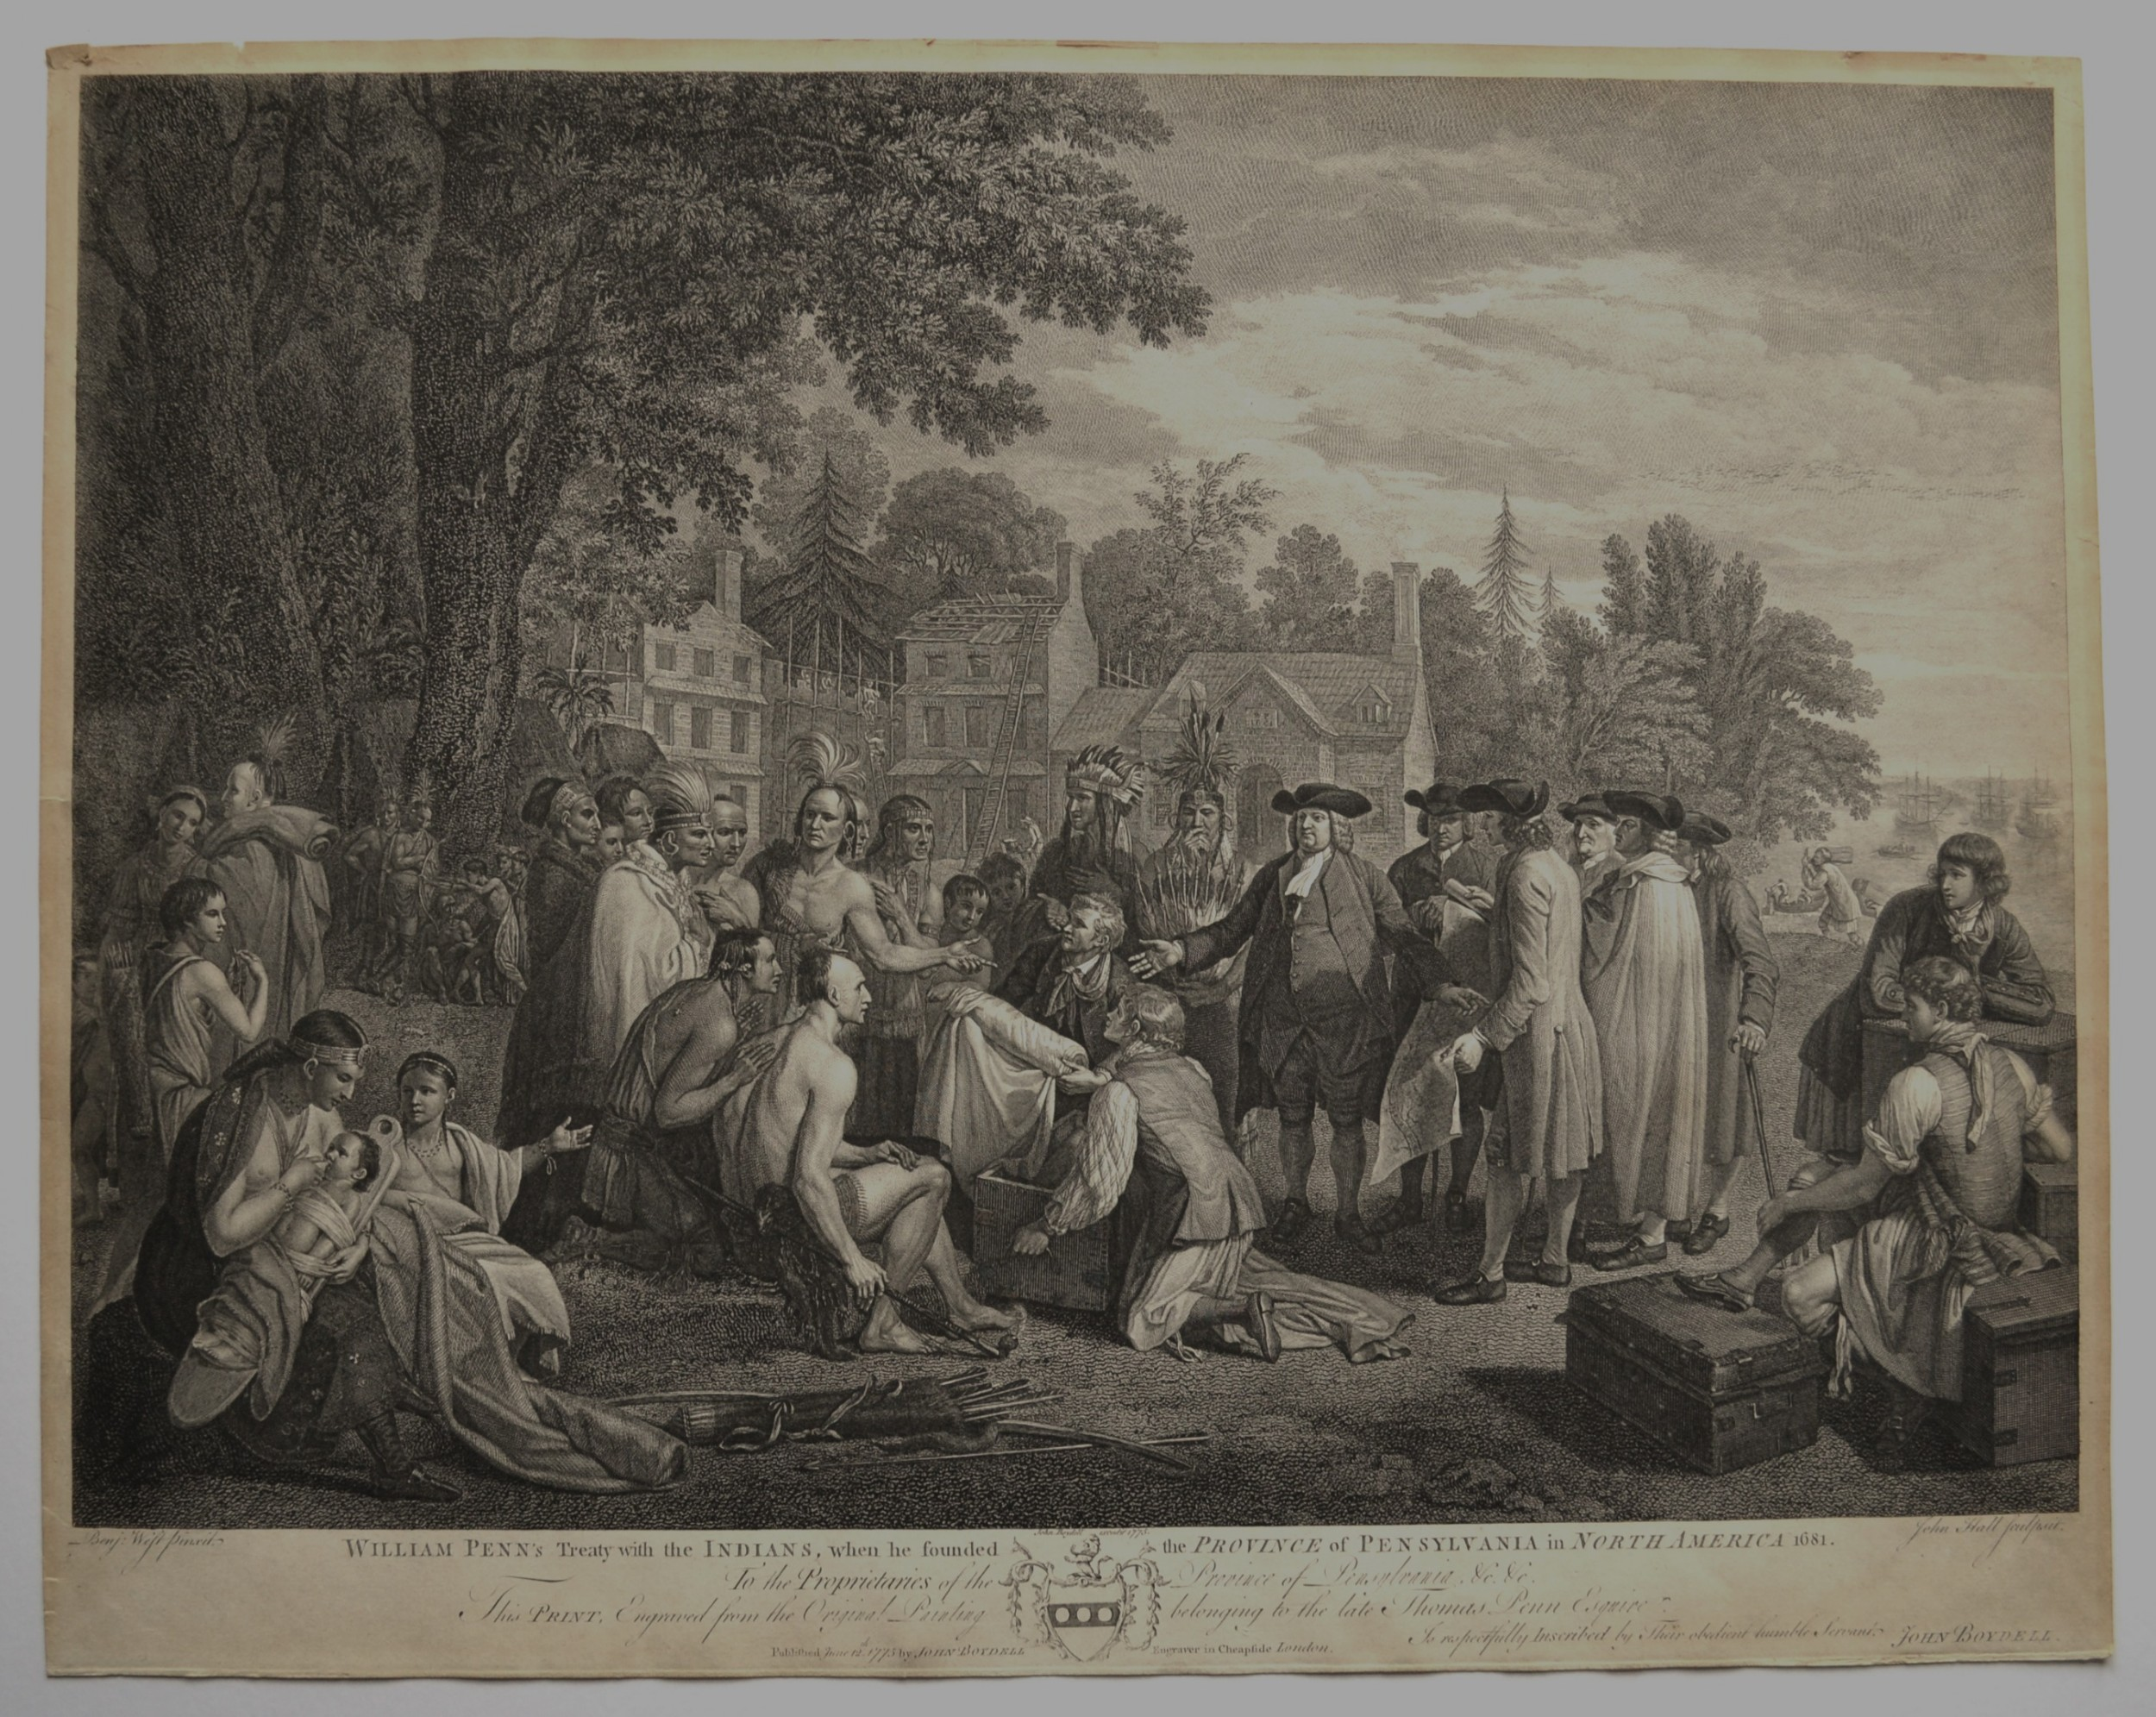 18th century copper engraving by john hall of william penn's treaty with the indians when he founded the province of pensylvania in north america 1681